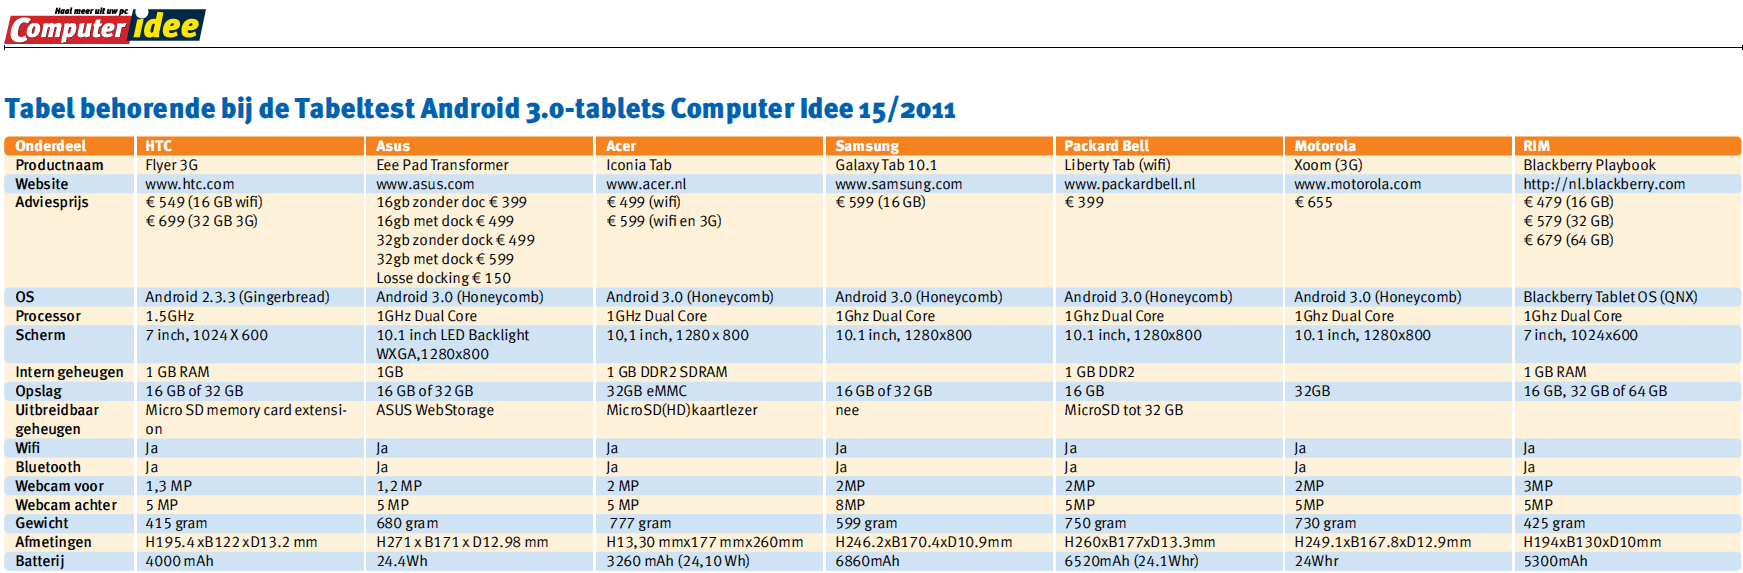 Tablets op basis van Android 3.0 Android 3.